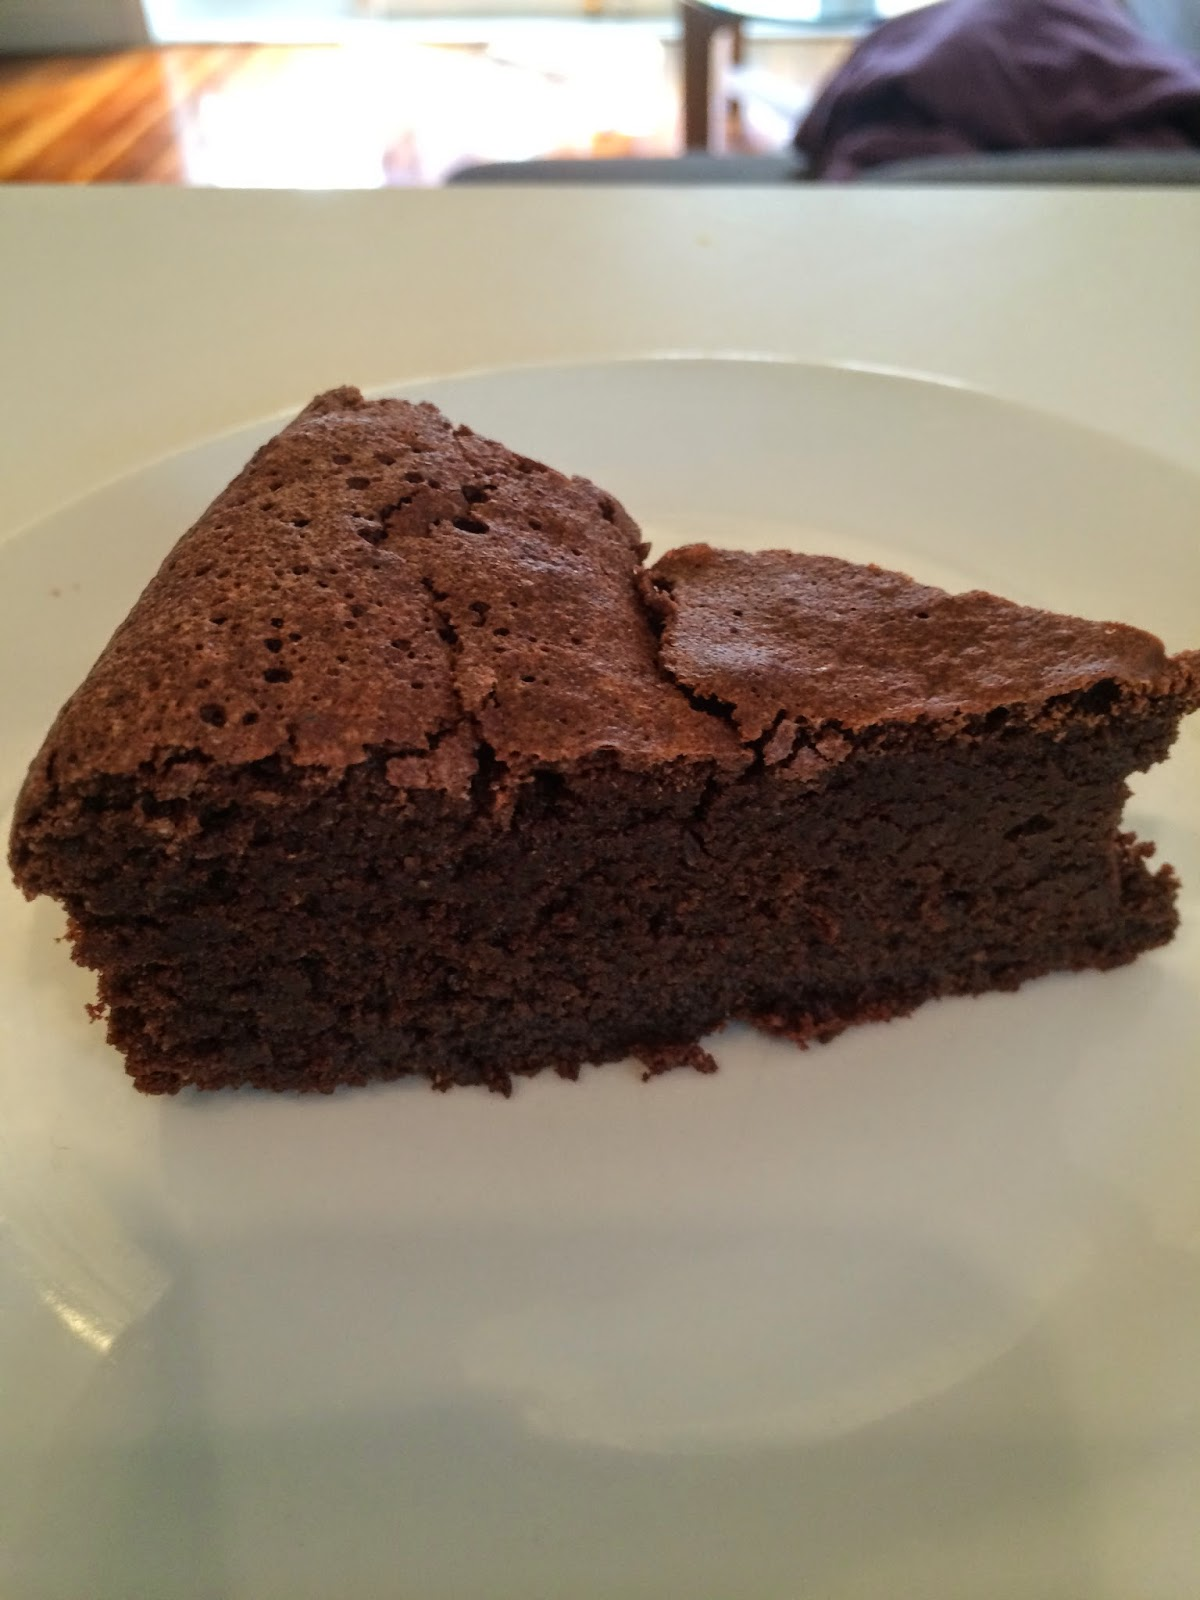 Gluten Free Chocolate Cake Annabel Langbein For Some Reason I Just Can T Seem To Get The Motivation Post On My Blog M Still Baking But Because Life